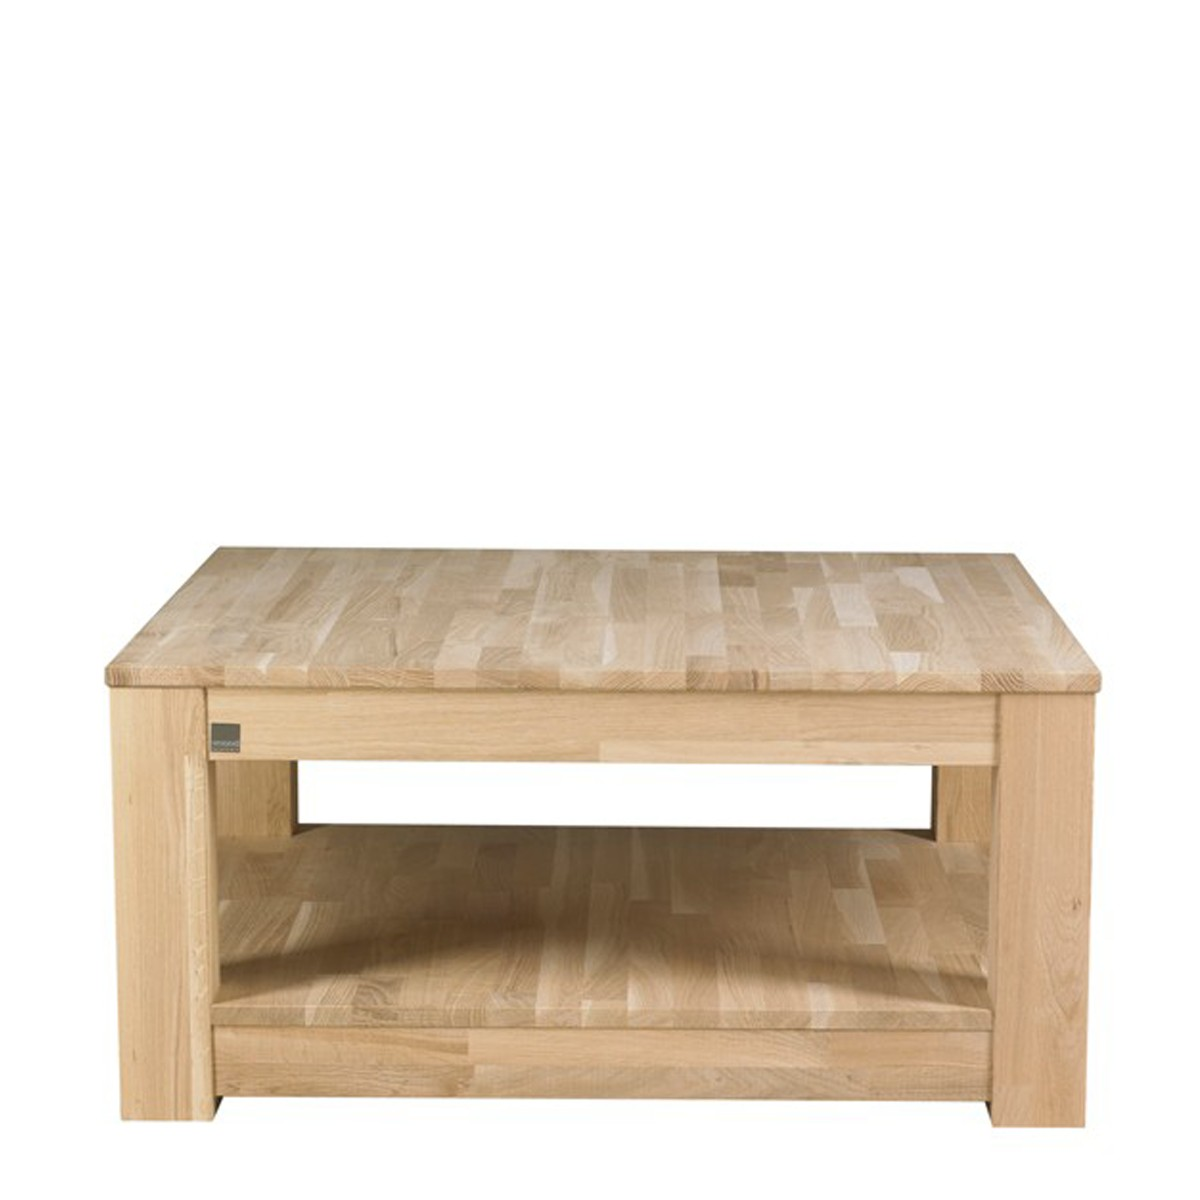 49 tables basses designs - Table basse carre bois ...